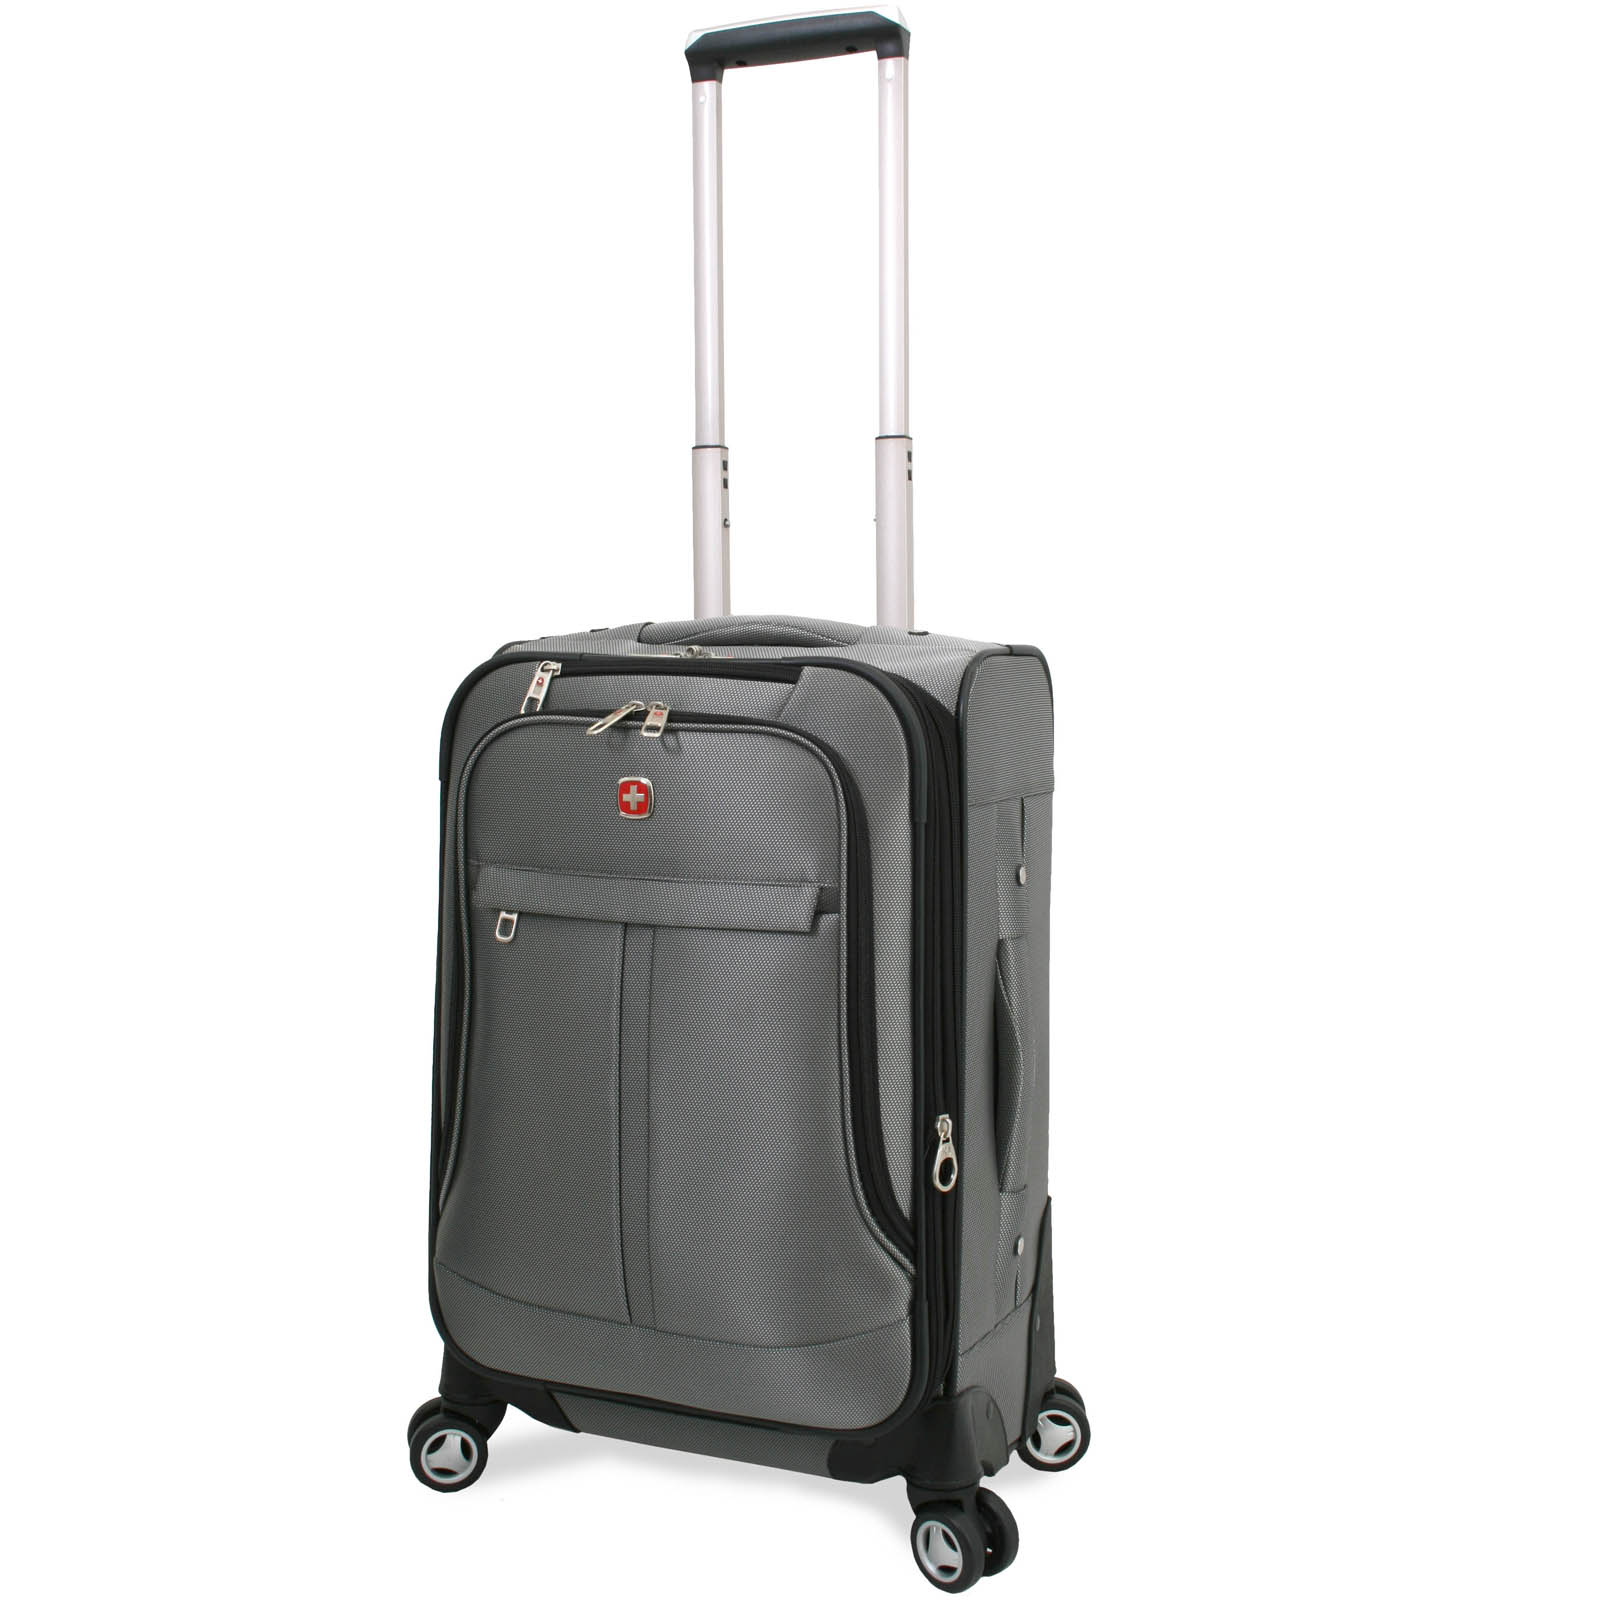 Wenger Swiss Alps 20-Inch Expandable Carry-On Spinner Upright Suitcase Luggage - Pewter at Sears.com